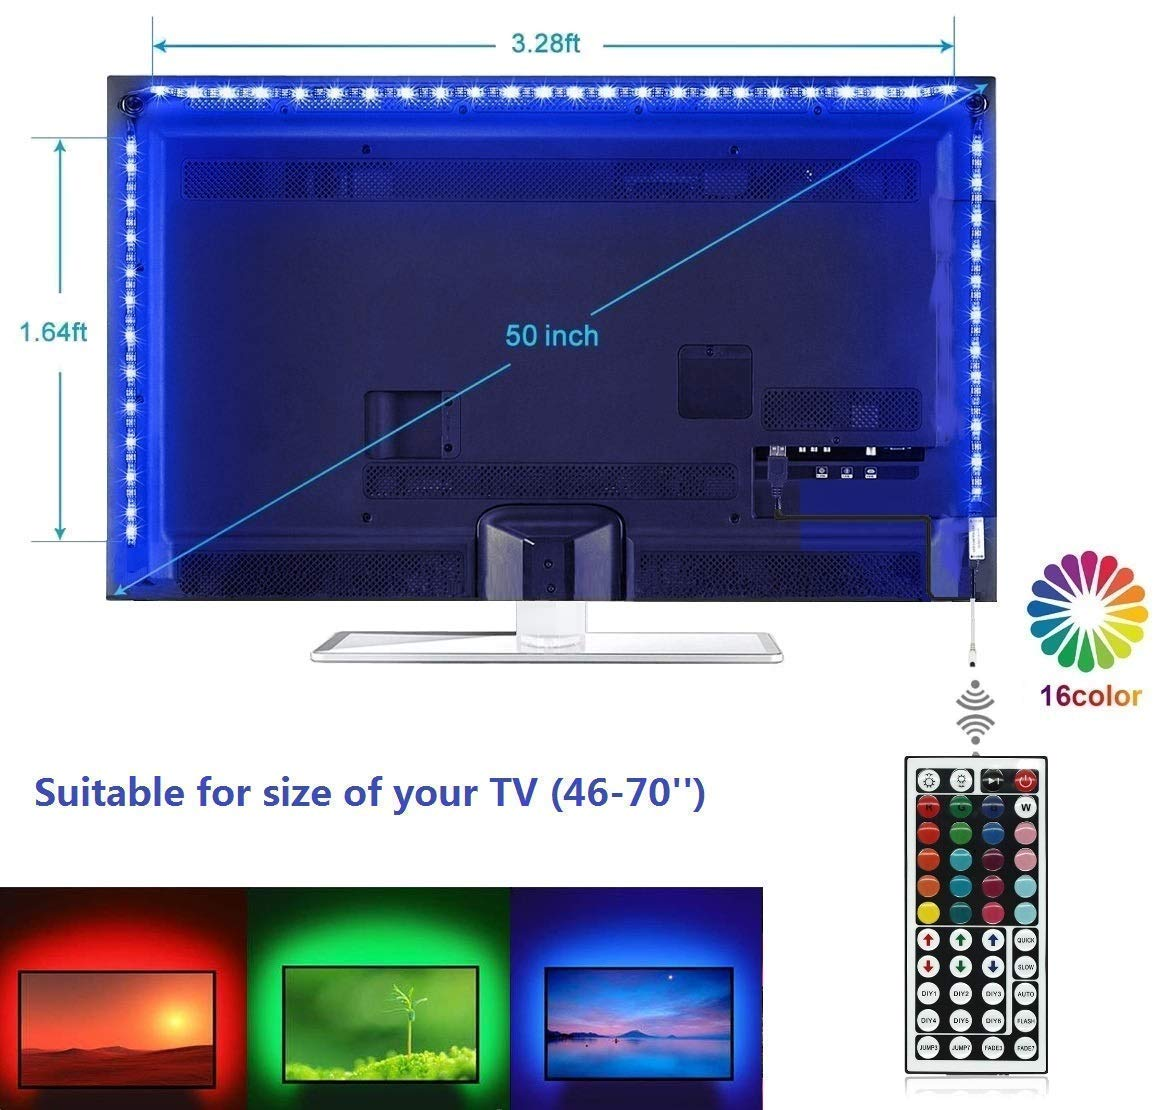 USB LED Strip Light Kit,Topled Light® 4 Pre-Cut Strips & 3 Wire Mounting Clips & 44 Key Mini Remote Control Multicolor RGB Home Accent LED Tape Light Strip for TV Backlight